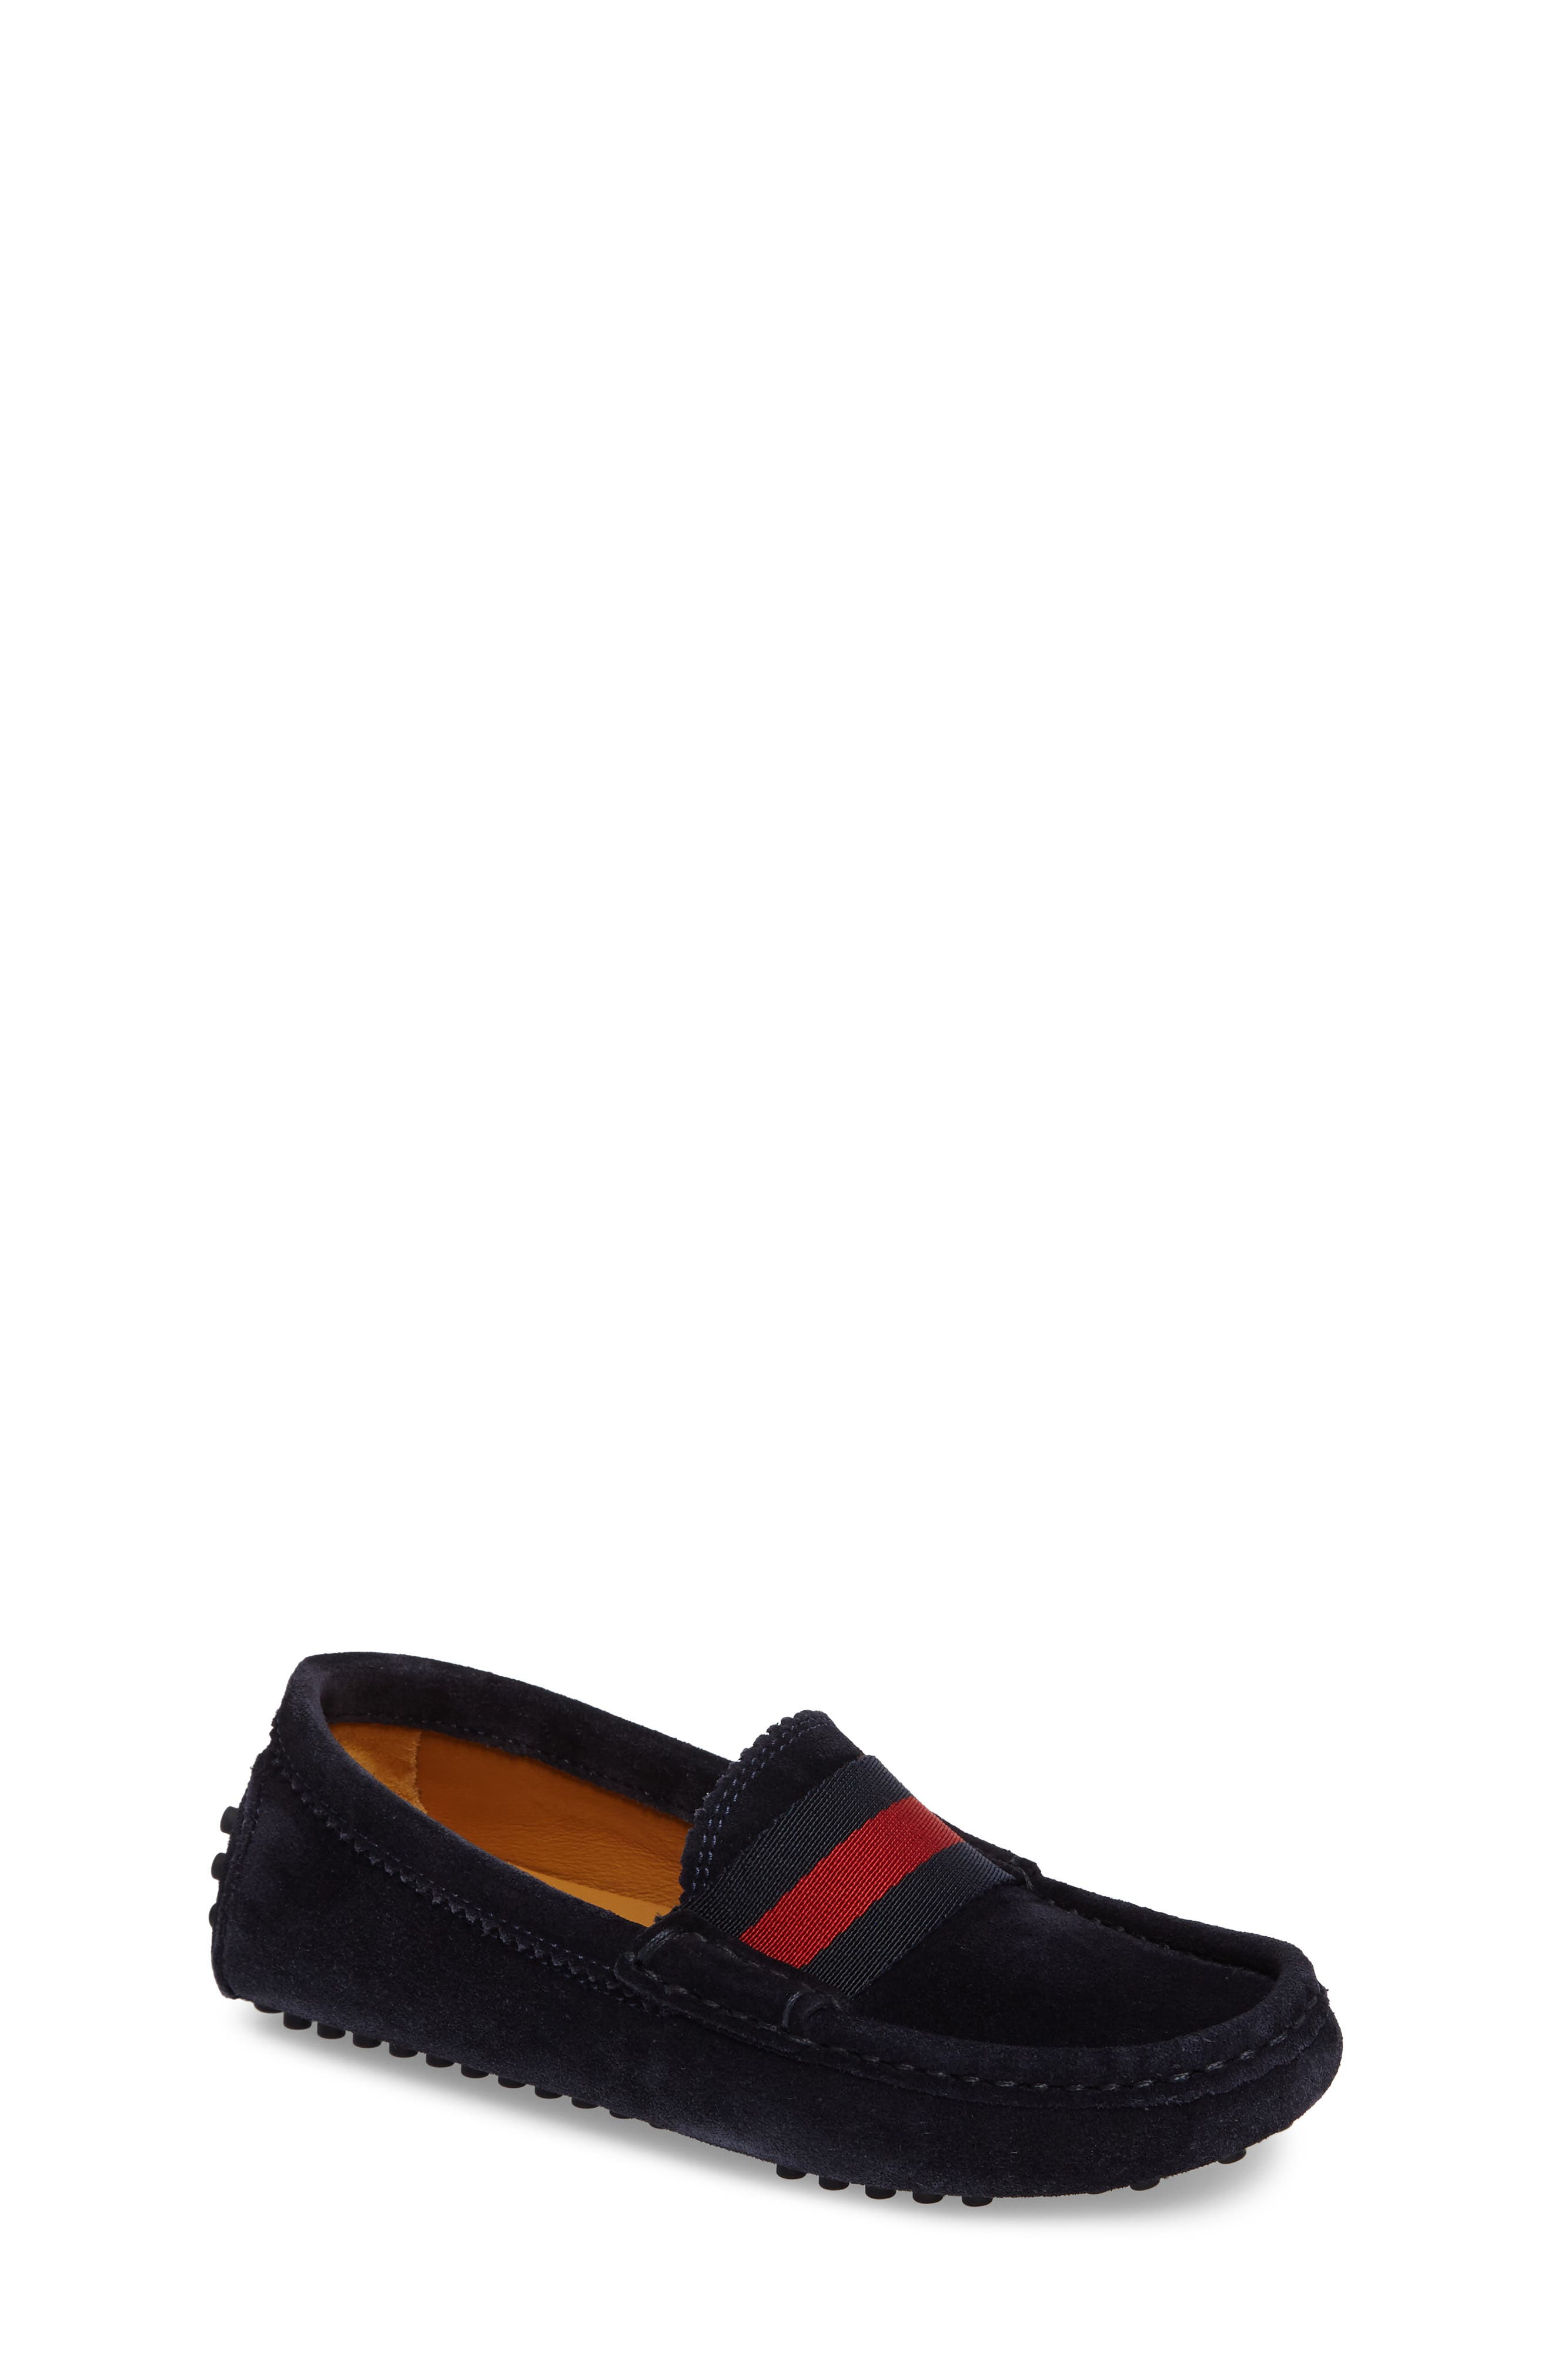 Alternate Image 1 Selected - Gucci Dandy Junior Driving Shoe (Toddler & Little Kid)